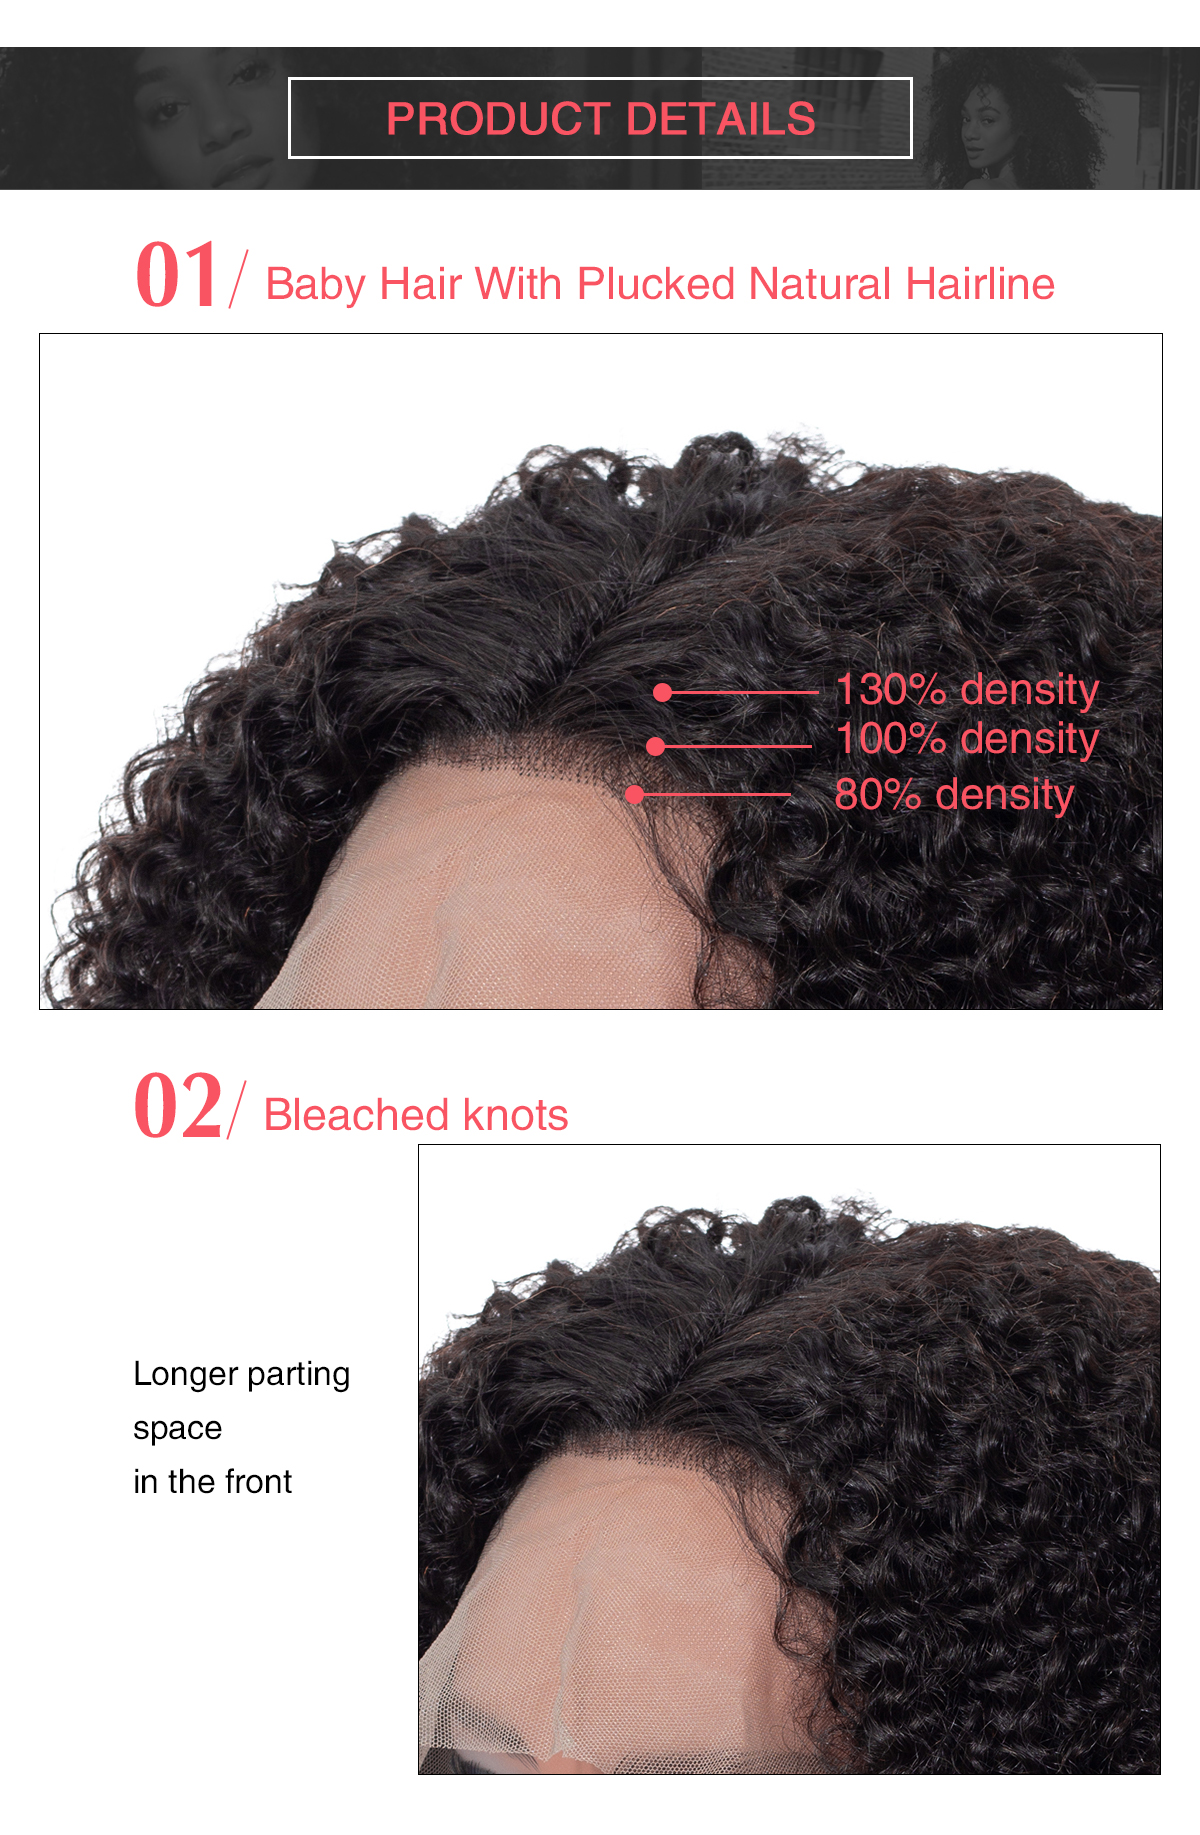 details about pre-plicked natural hair liner and parting for curly lace front wig